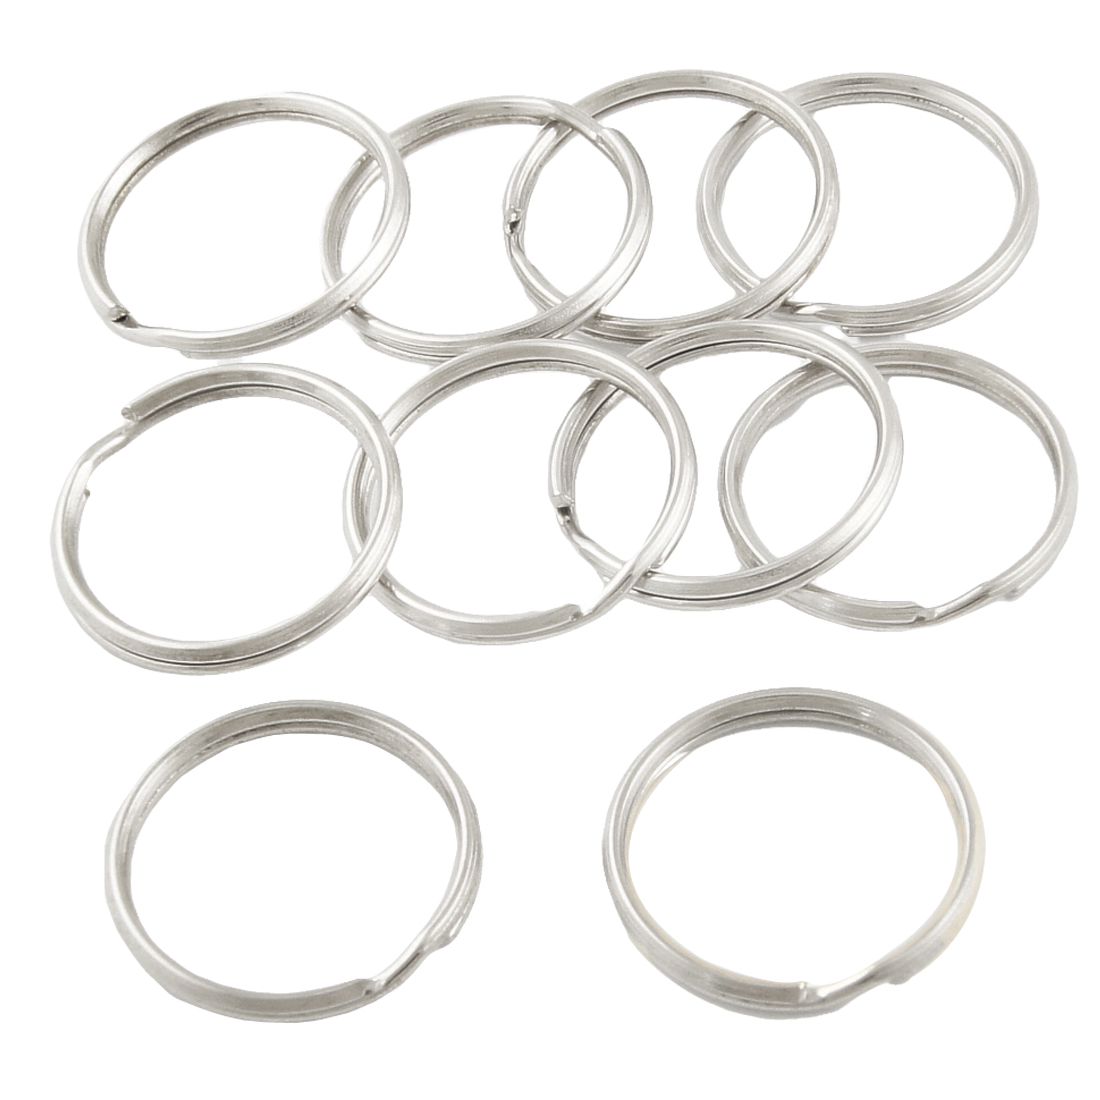 24mm Diameter Sliver Tone Double Loop Split Ring Key Ring x 10